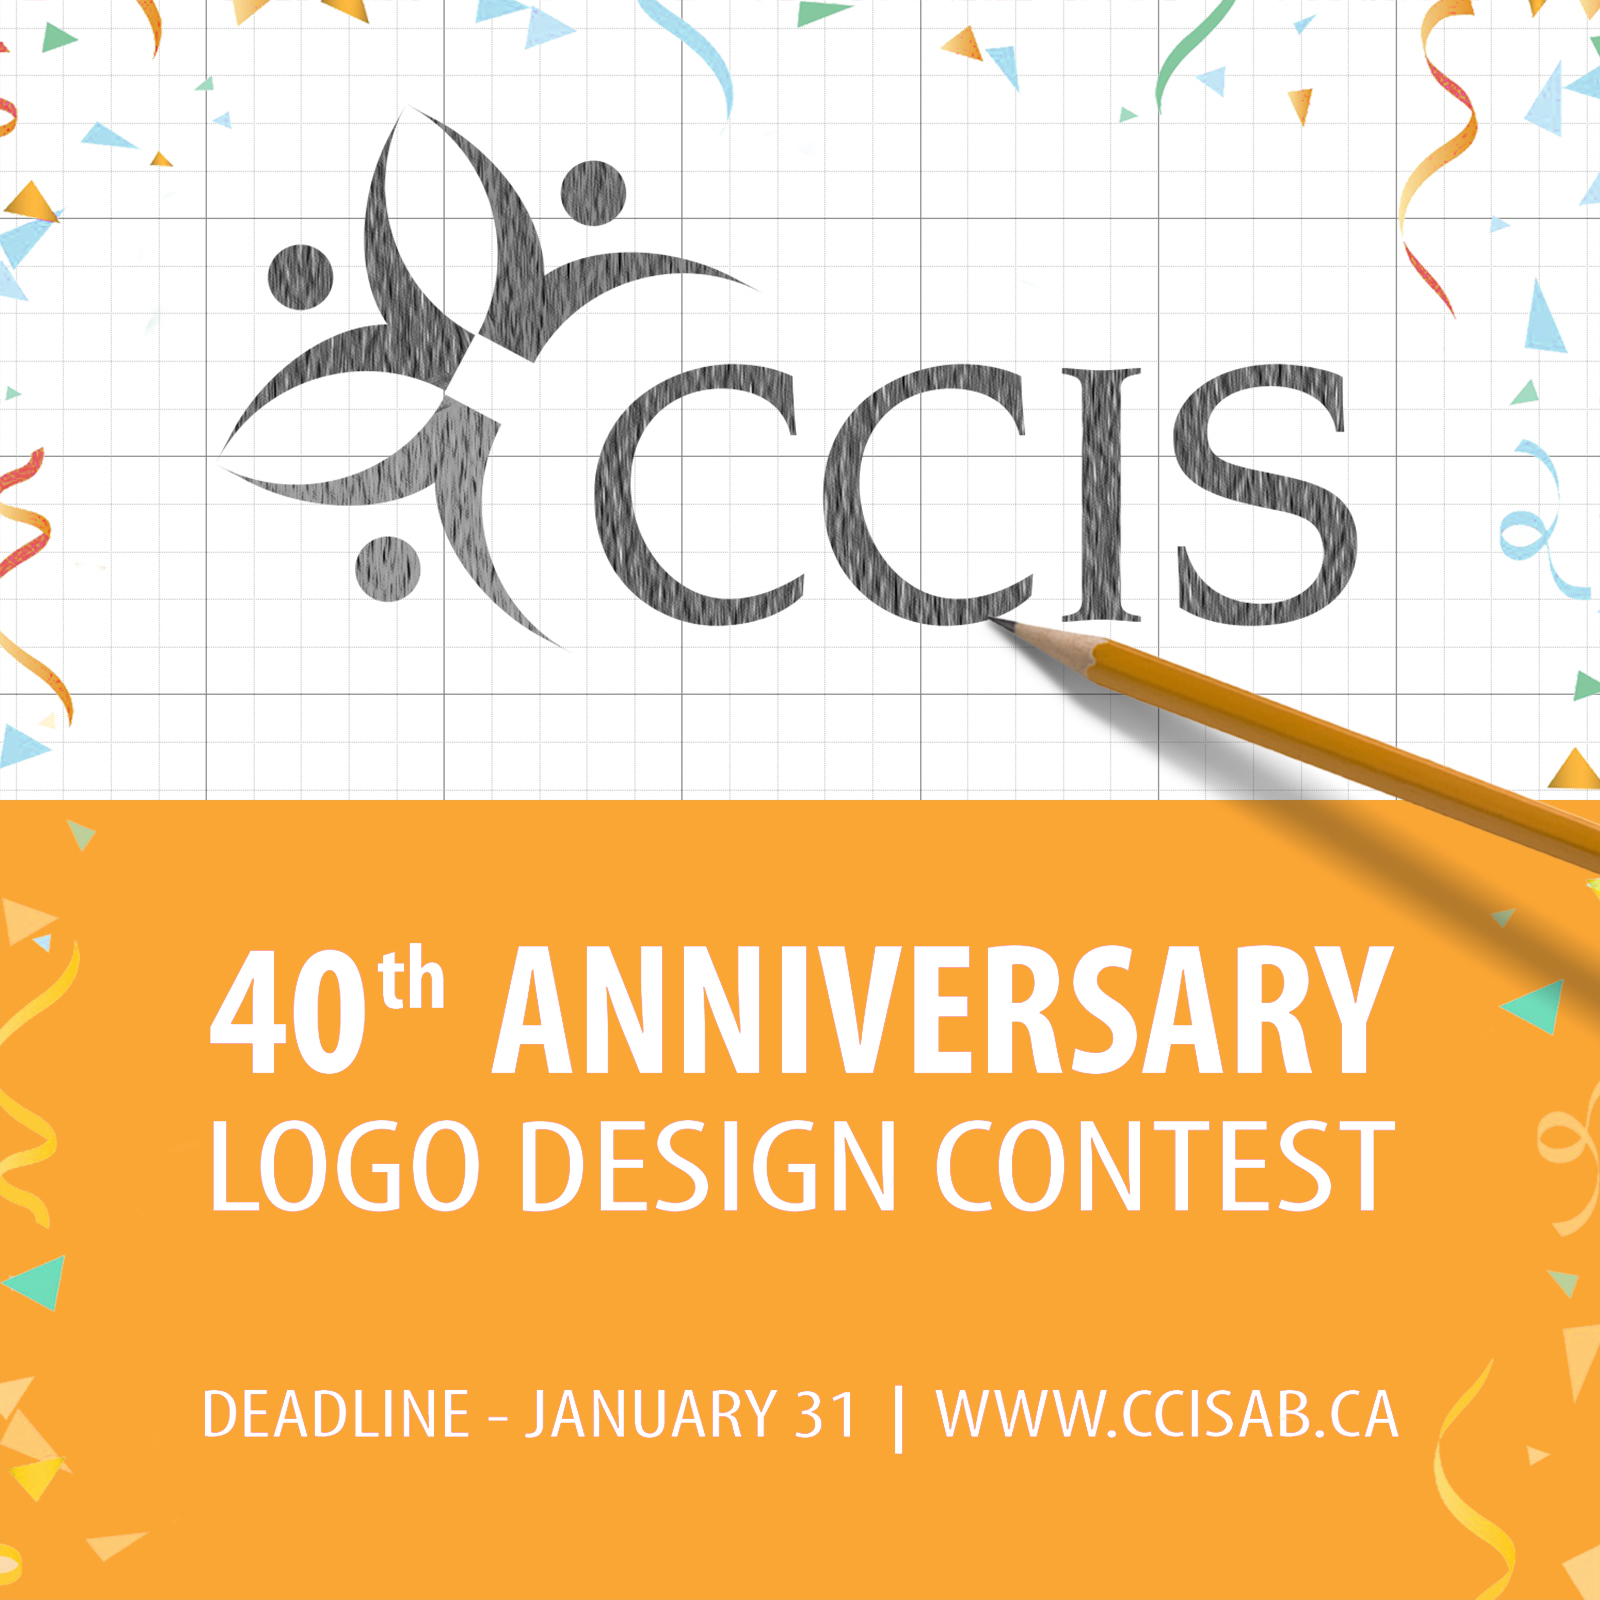 CCIS 40 Anniversary Logo Design Contest Announcement Jan 2021